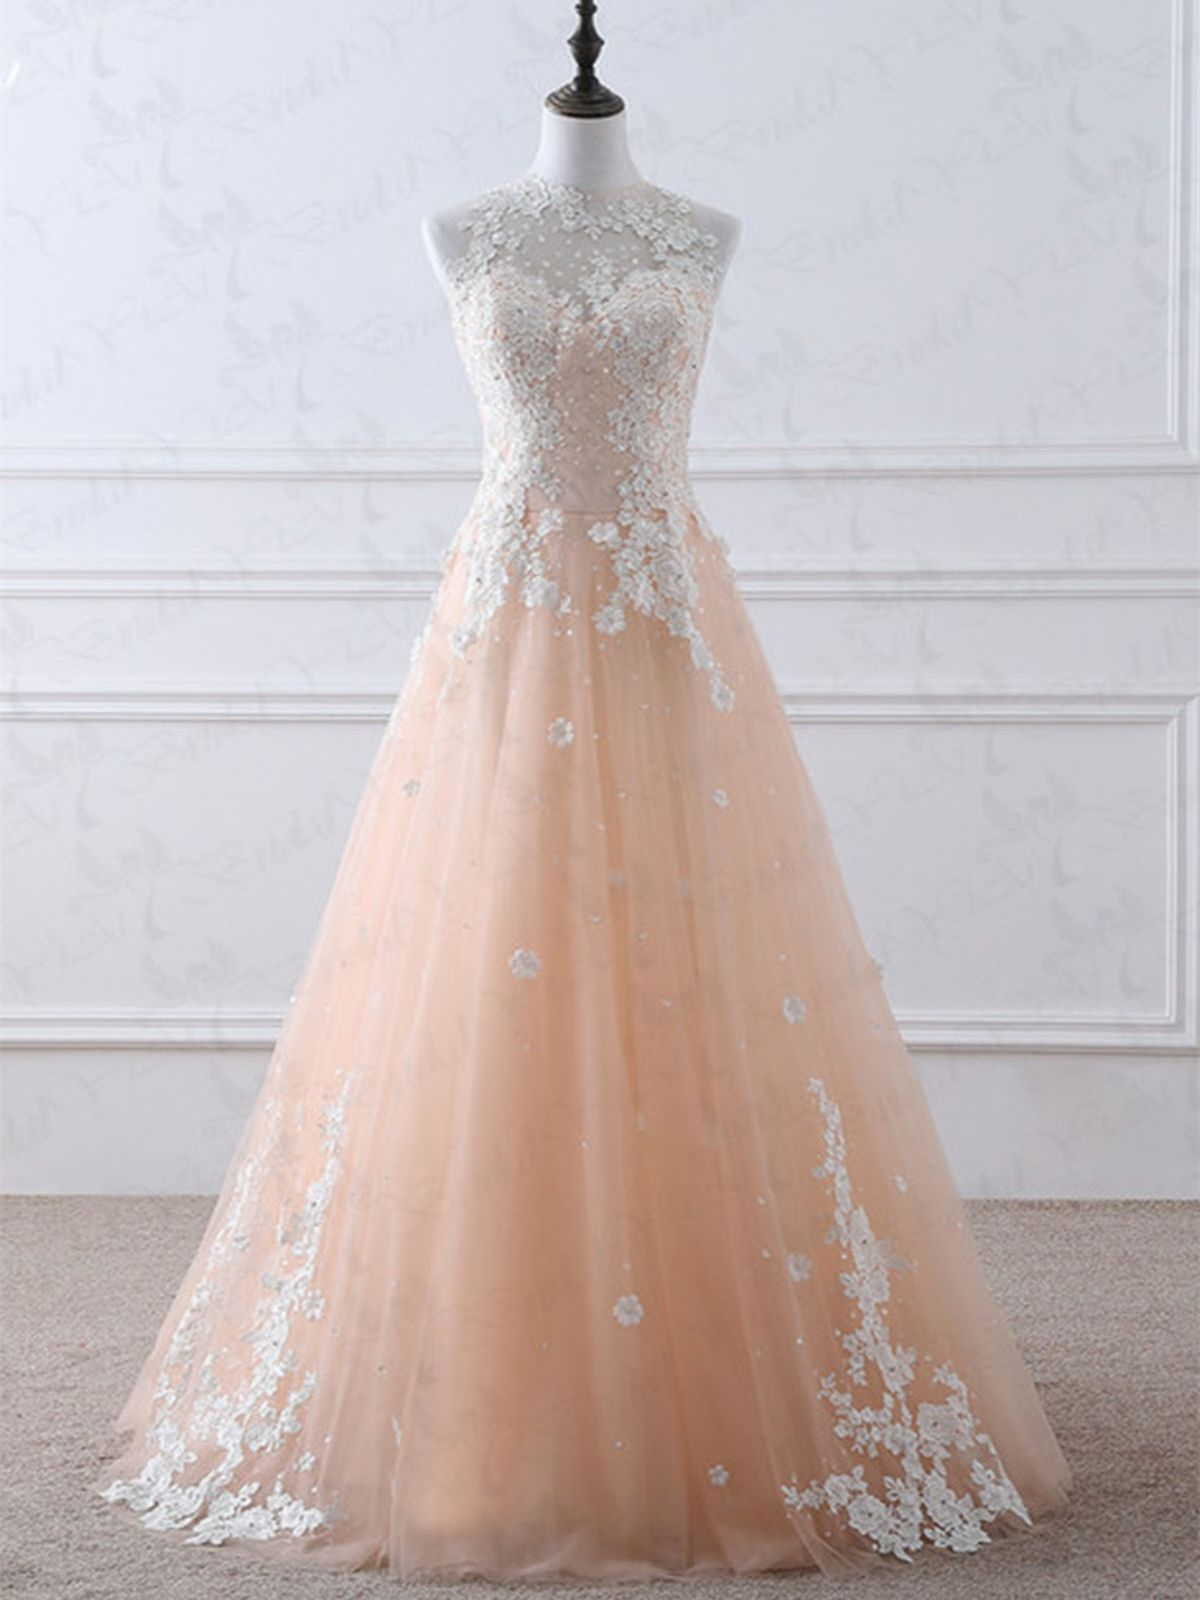 High Neck White Lace Appliques Pink Long Prom Dresses 2020 ...